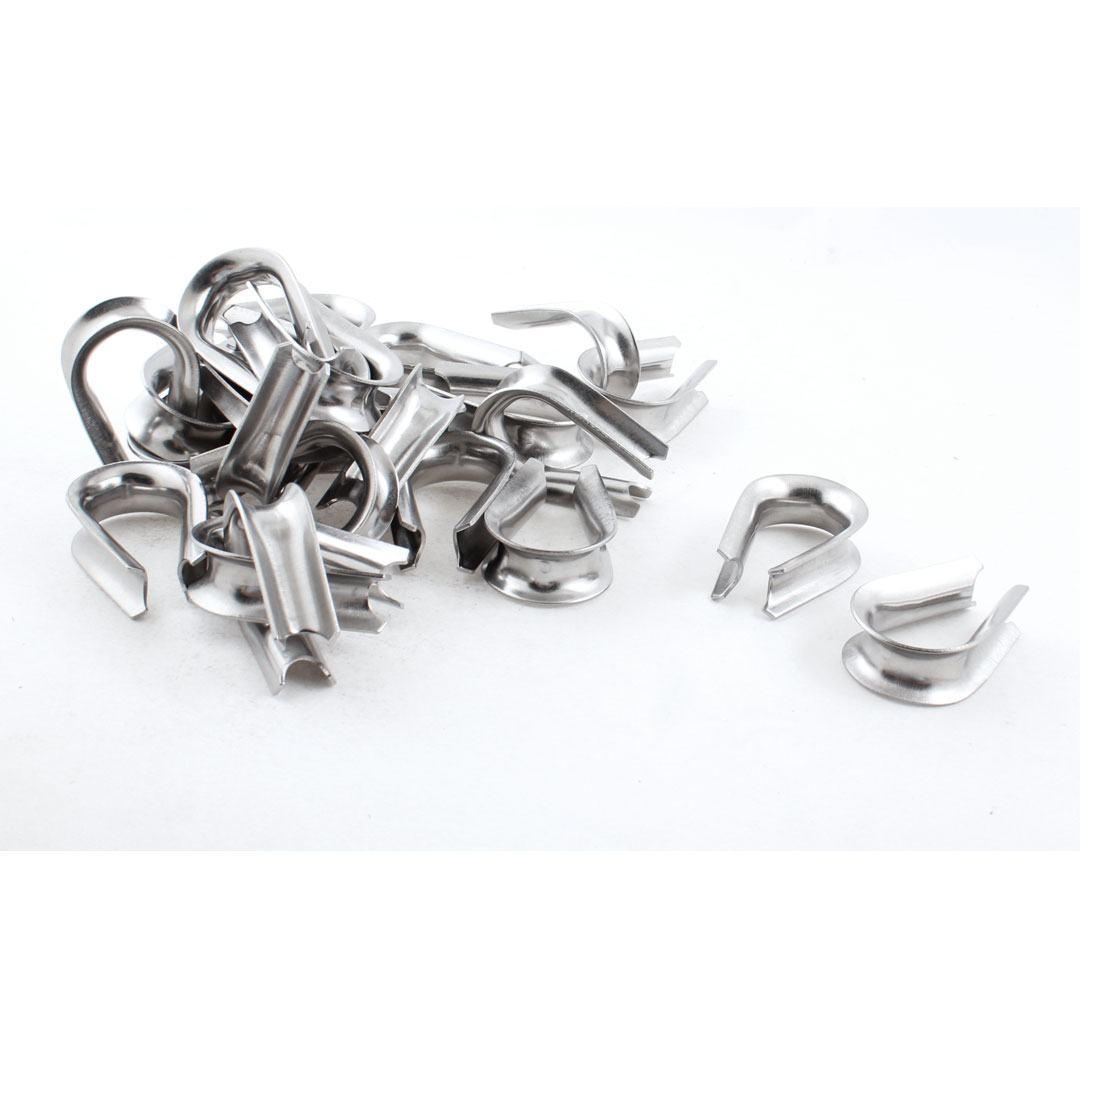 25 PCS Stainless Steel Cable Thimbles Lifting Gear for 12mm Wire